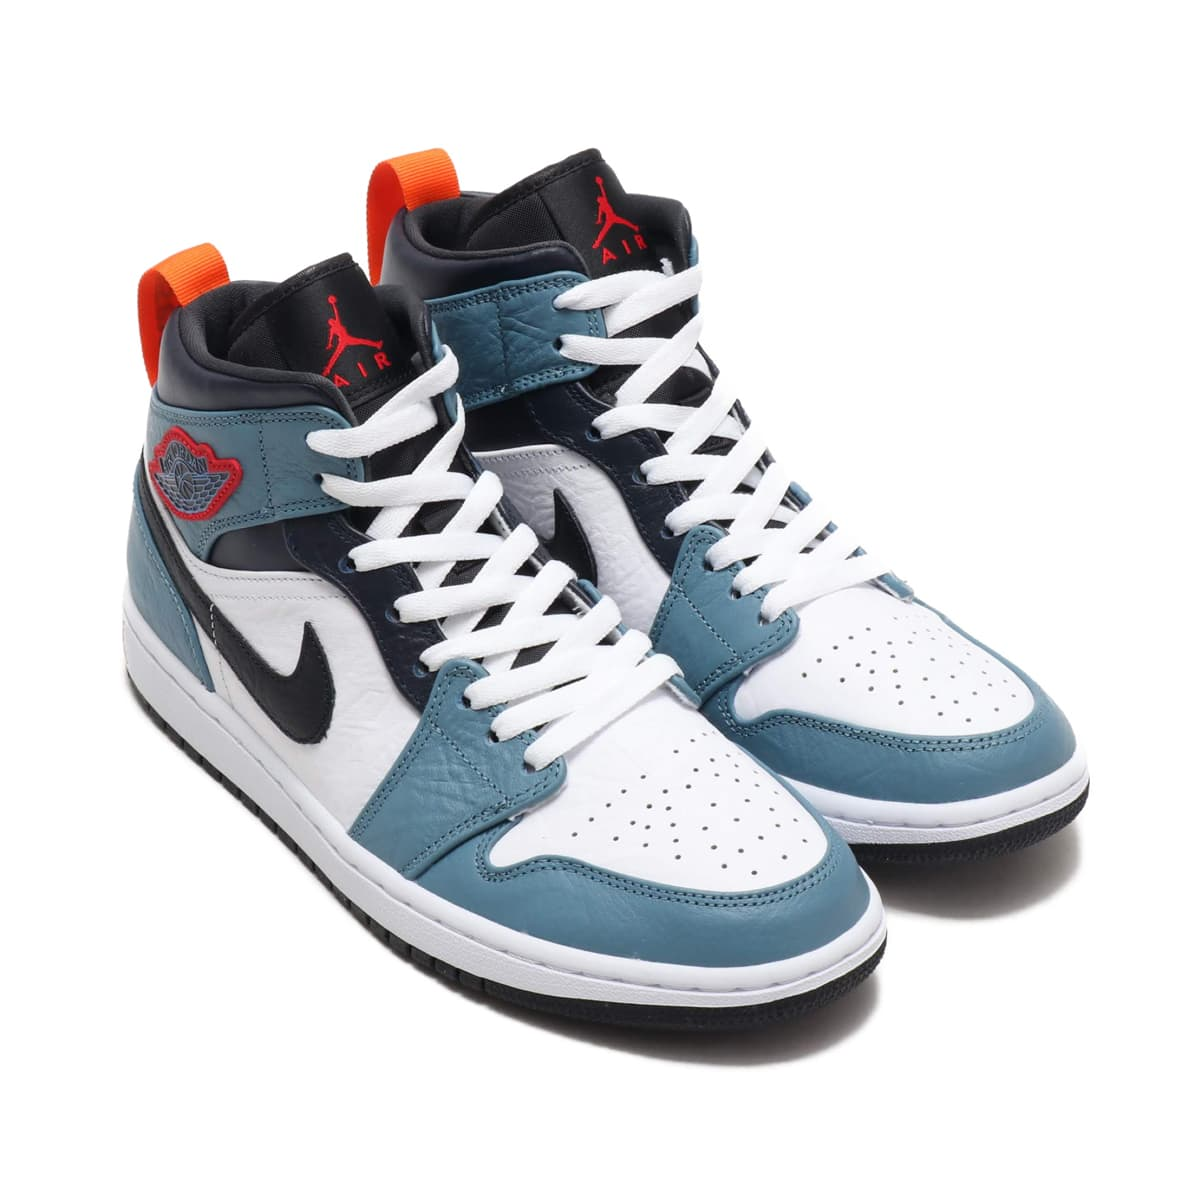 JORDAN BRAND AIR JORDAN 1 MID SE FRLS APLA WHITE/BLACK-CELESTIAL TEAL-DARK OBSIDIAN 19HO-S_photo_large